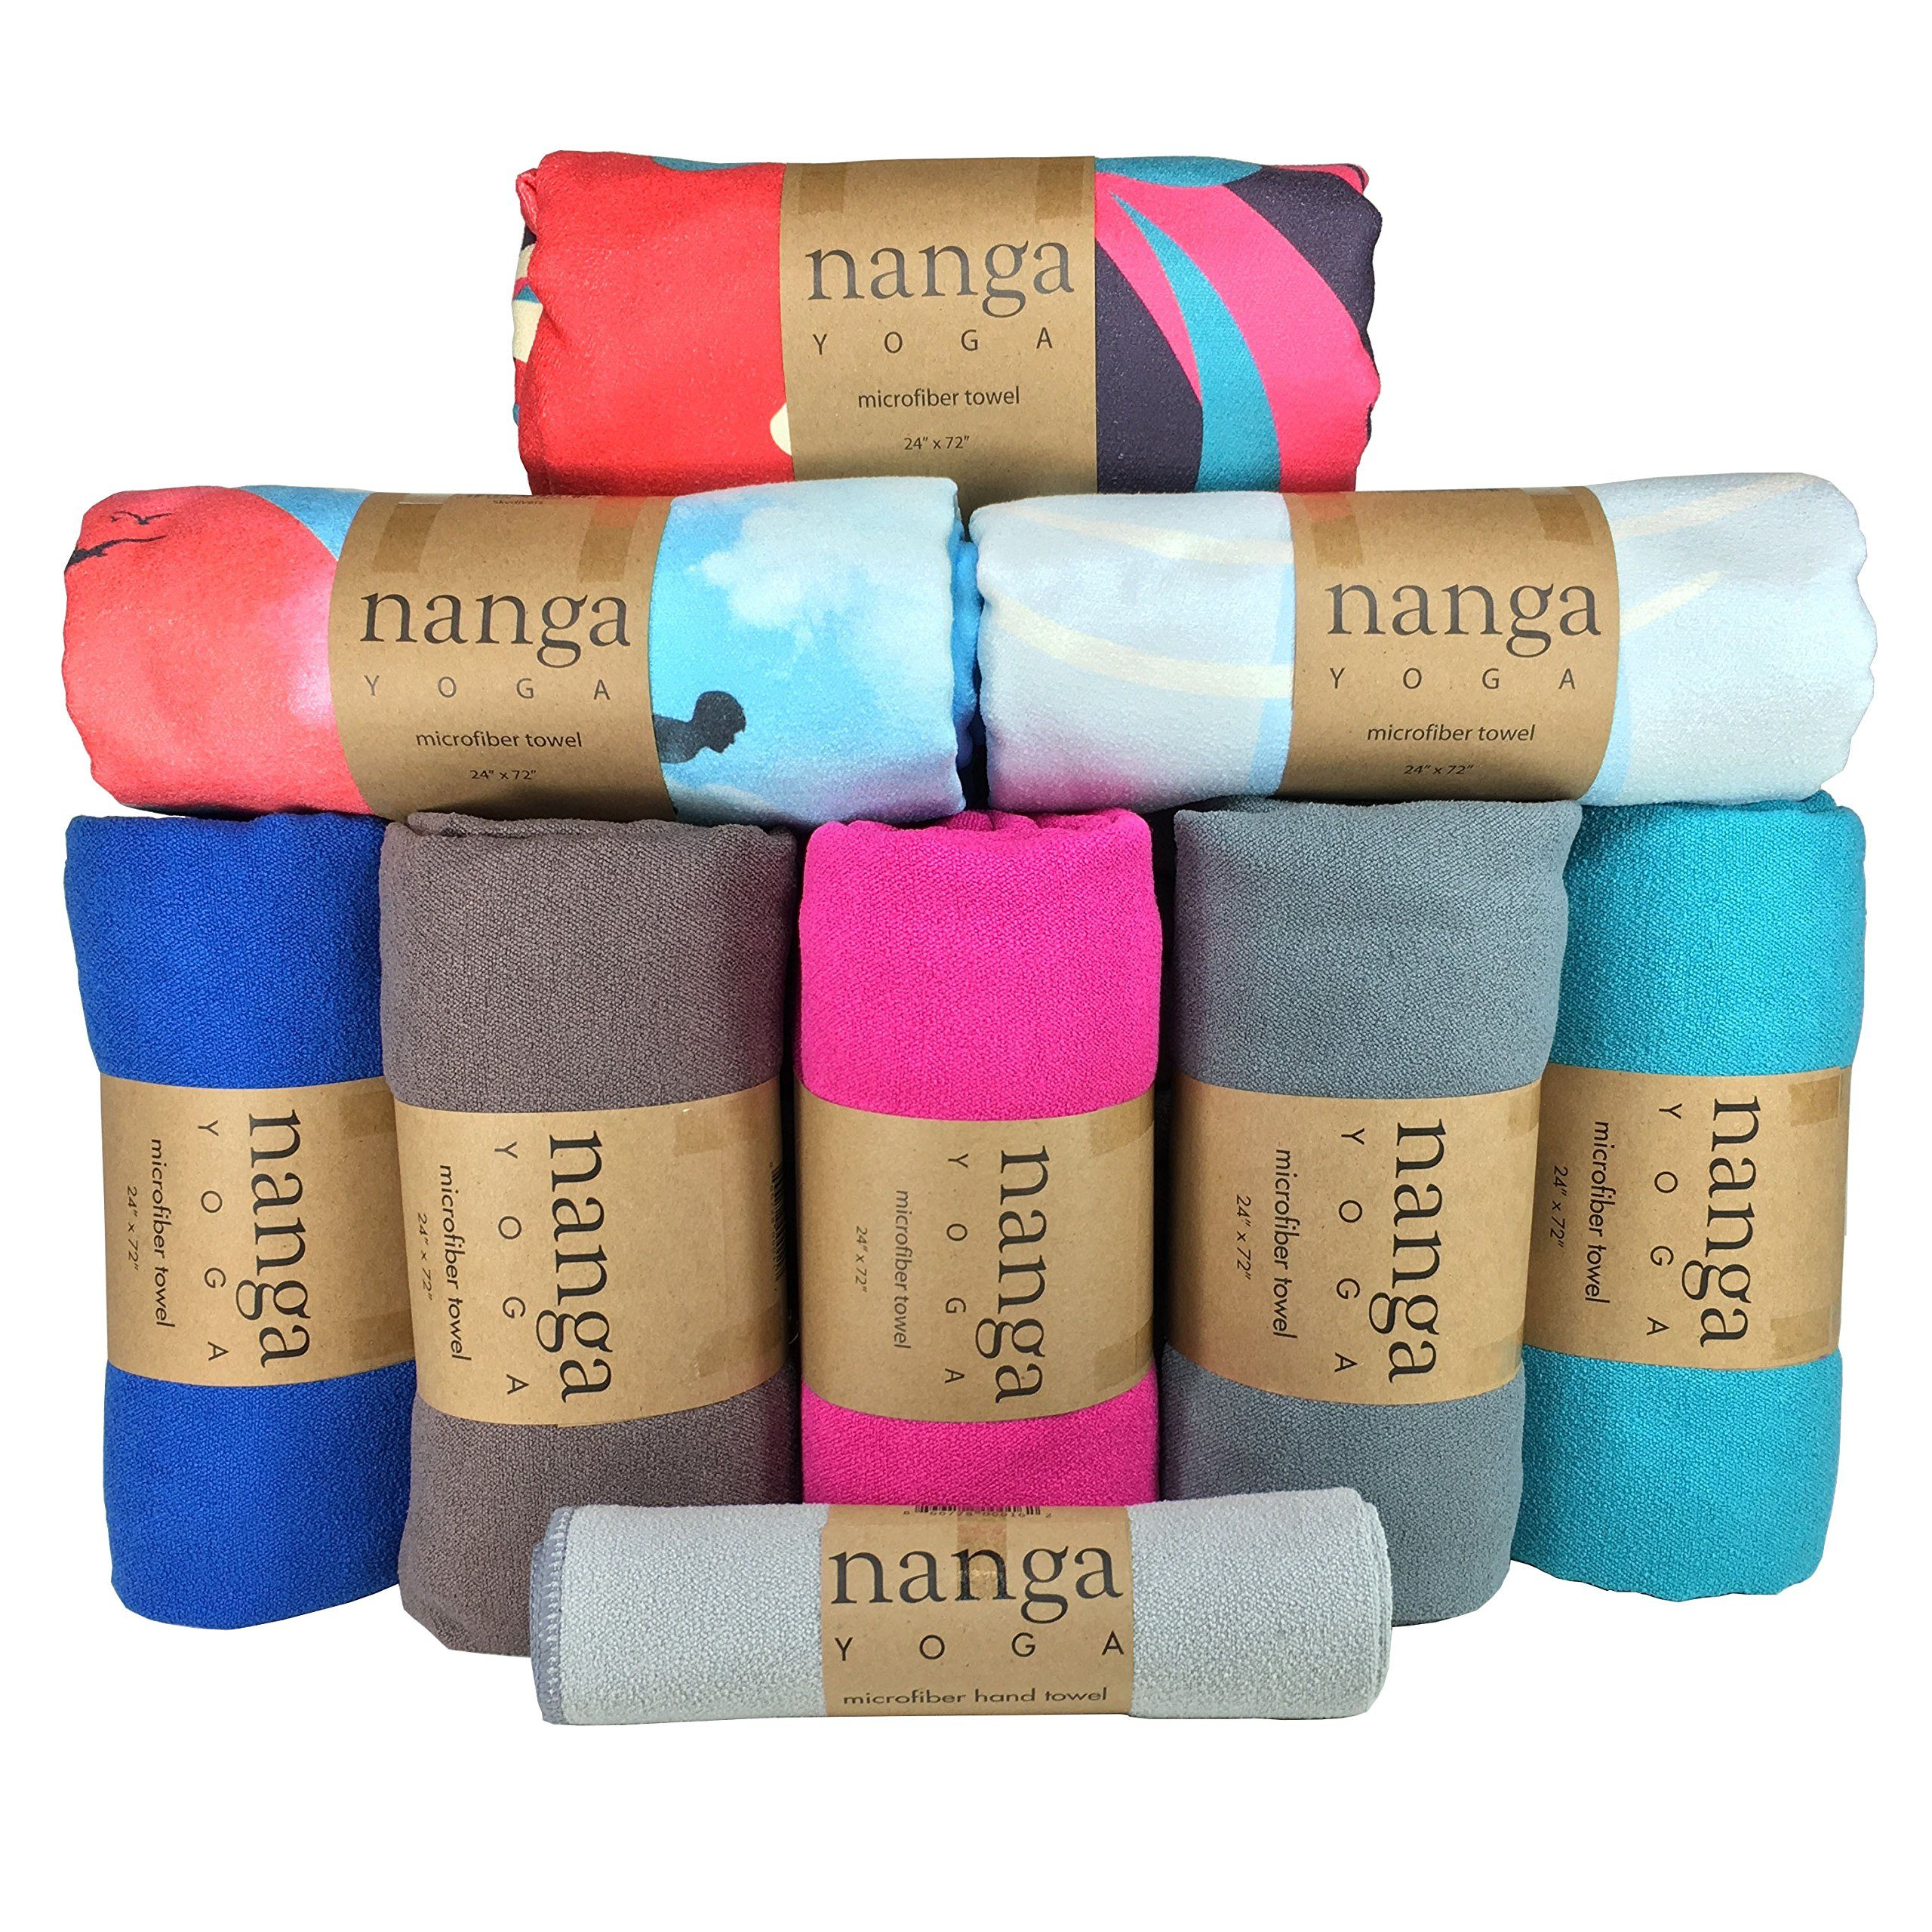 yoga mats pile mat of com for hathayoga towels shopping a